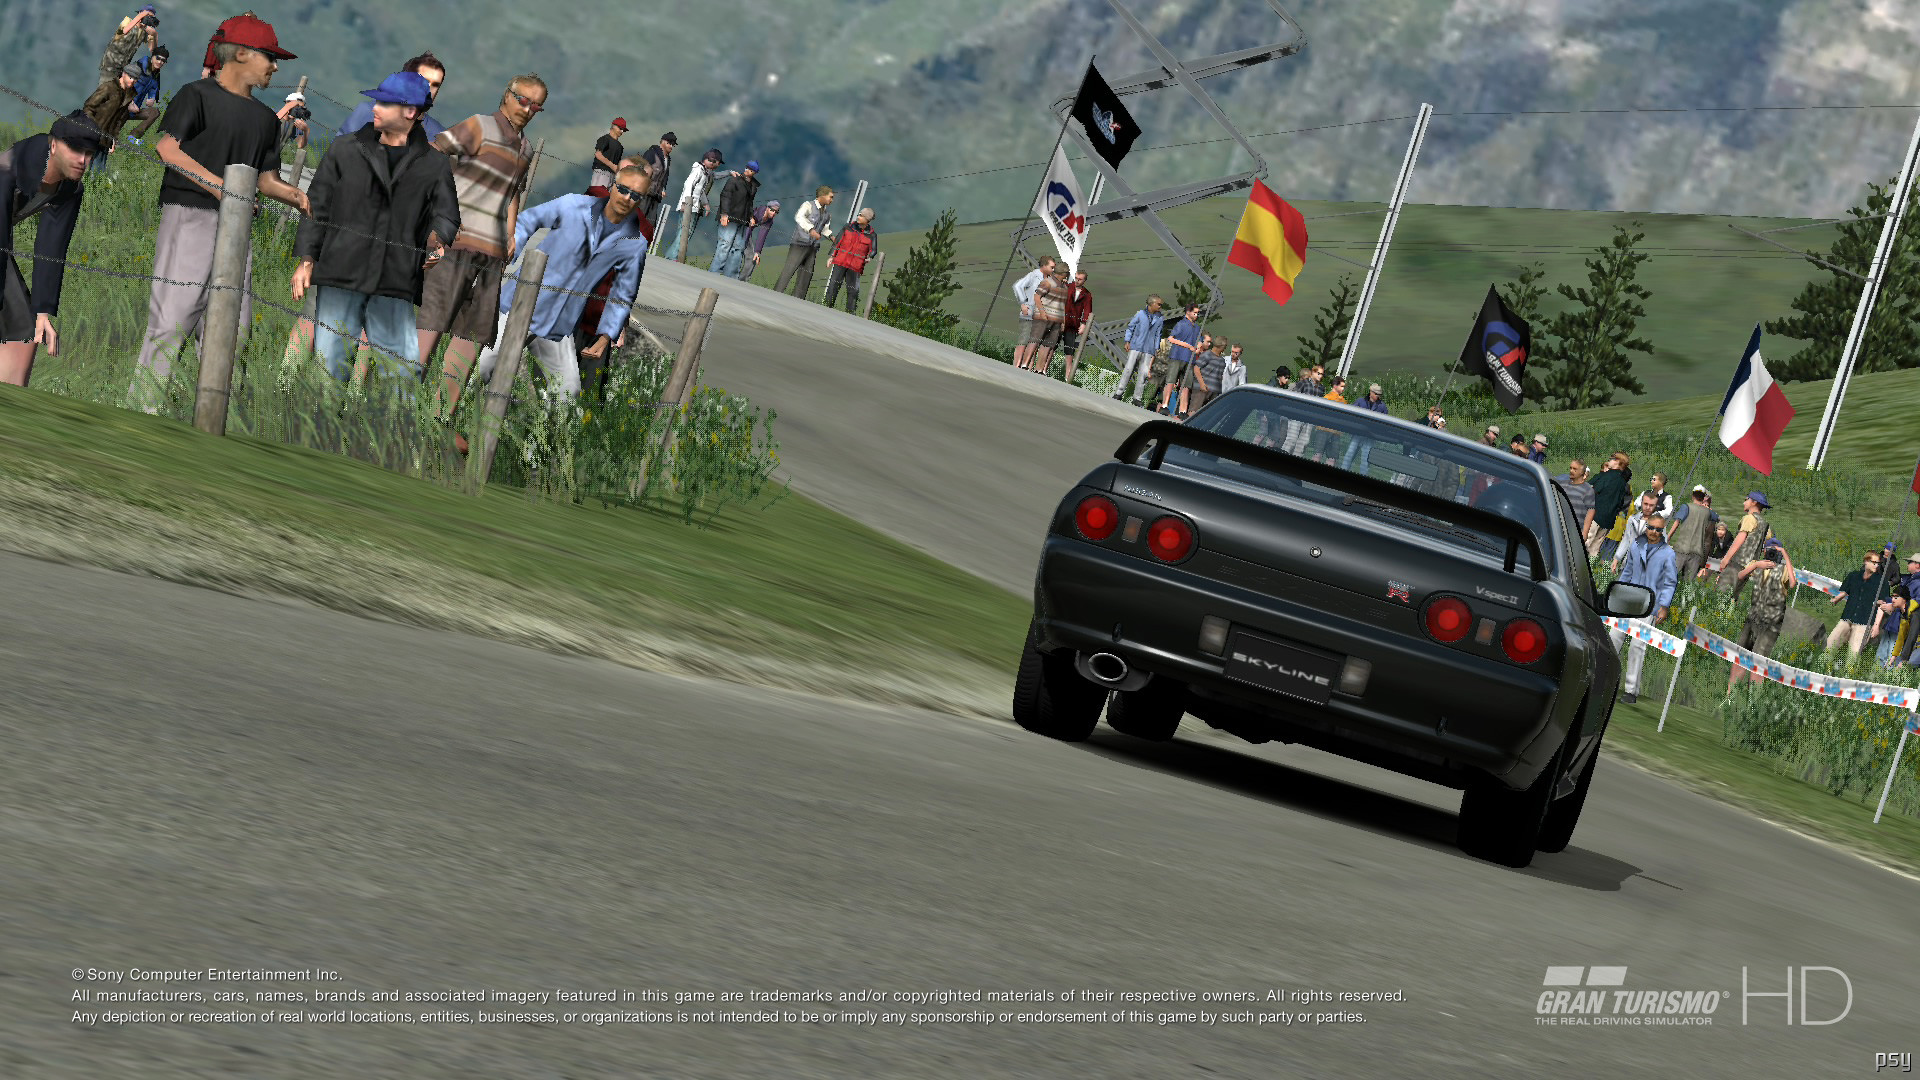 1920x1080 Video Game Gran Turismo HD